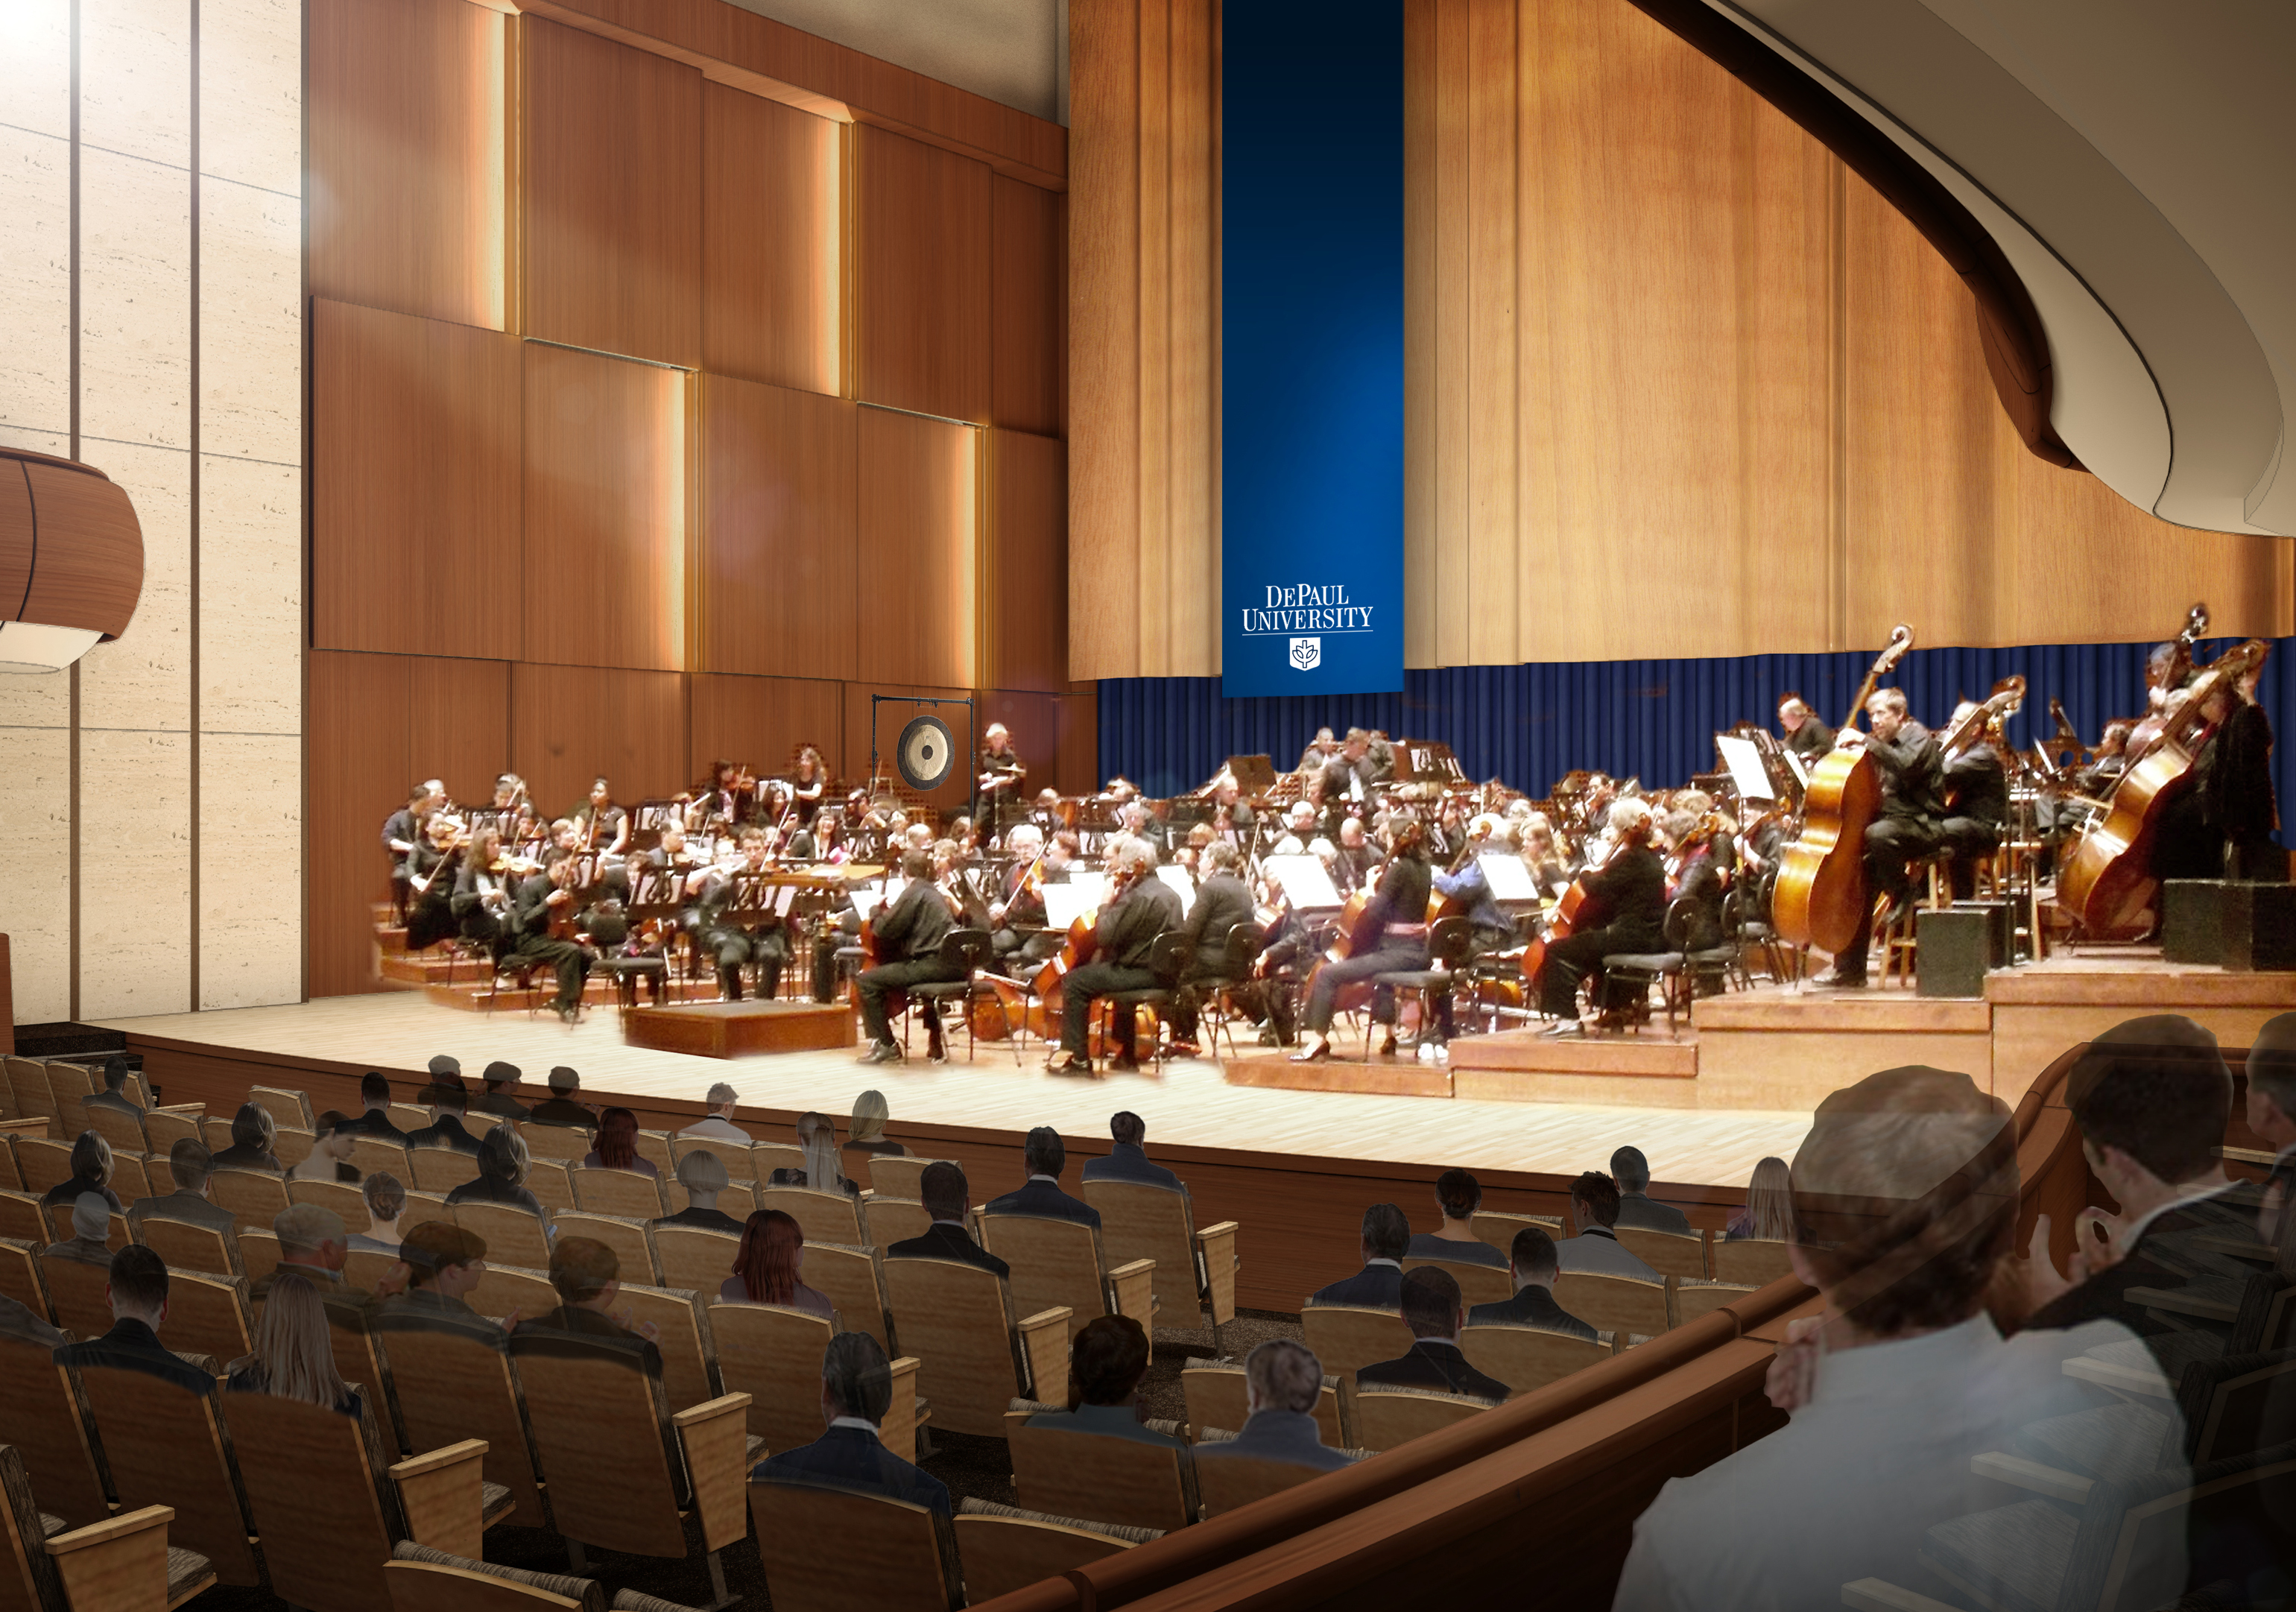 William E. and Mary Pat Gannon Hay Concert Hall